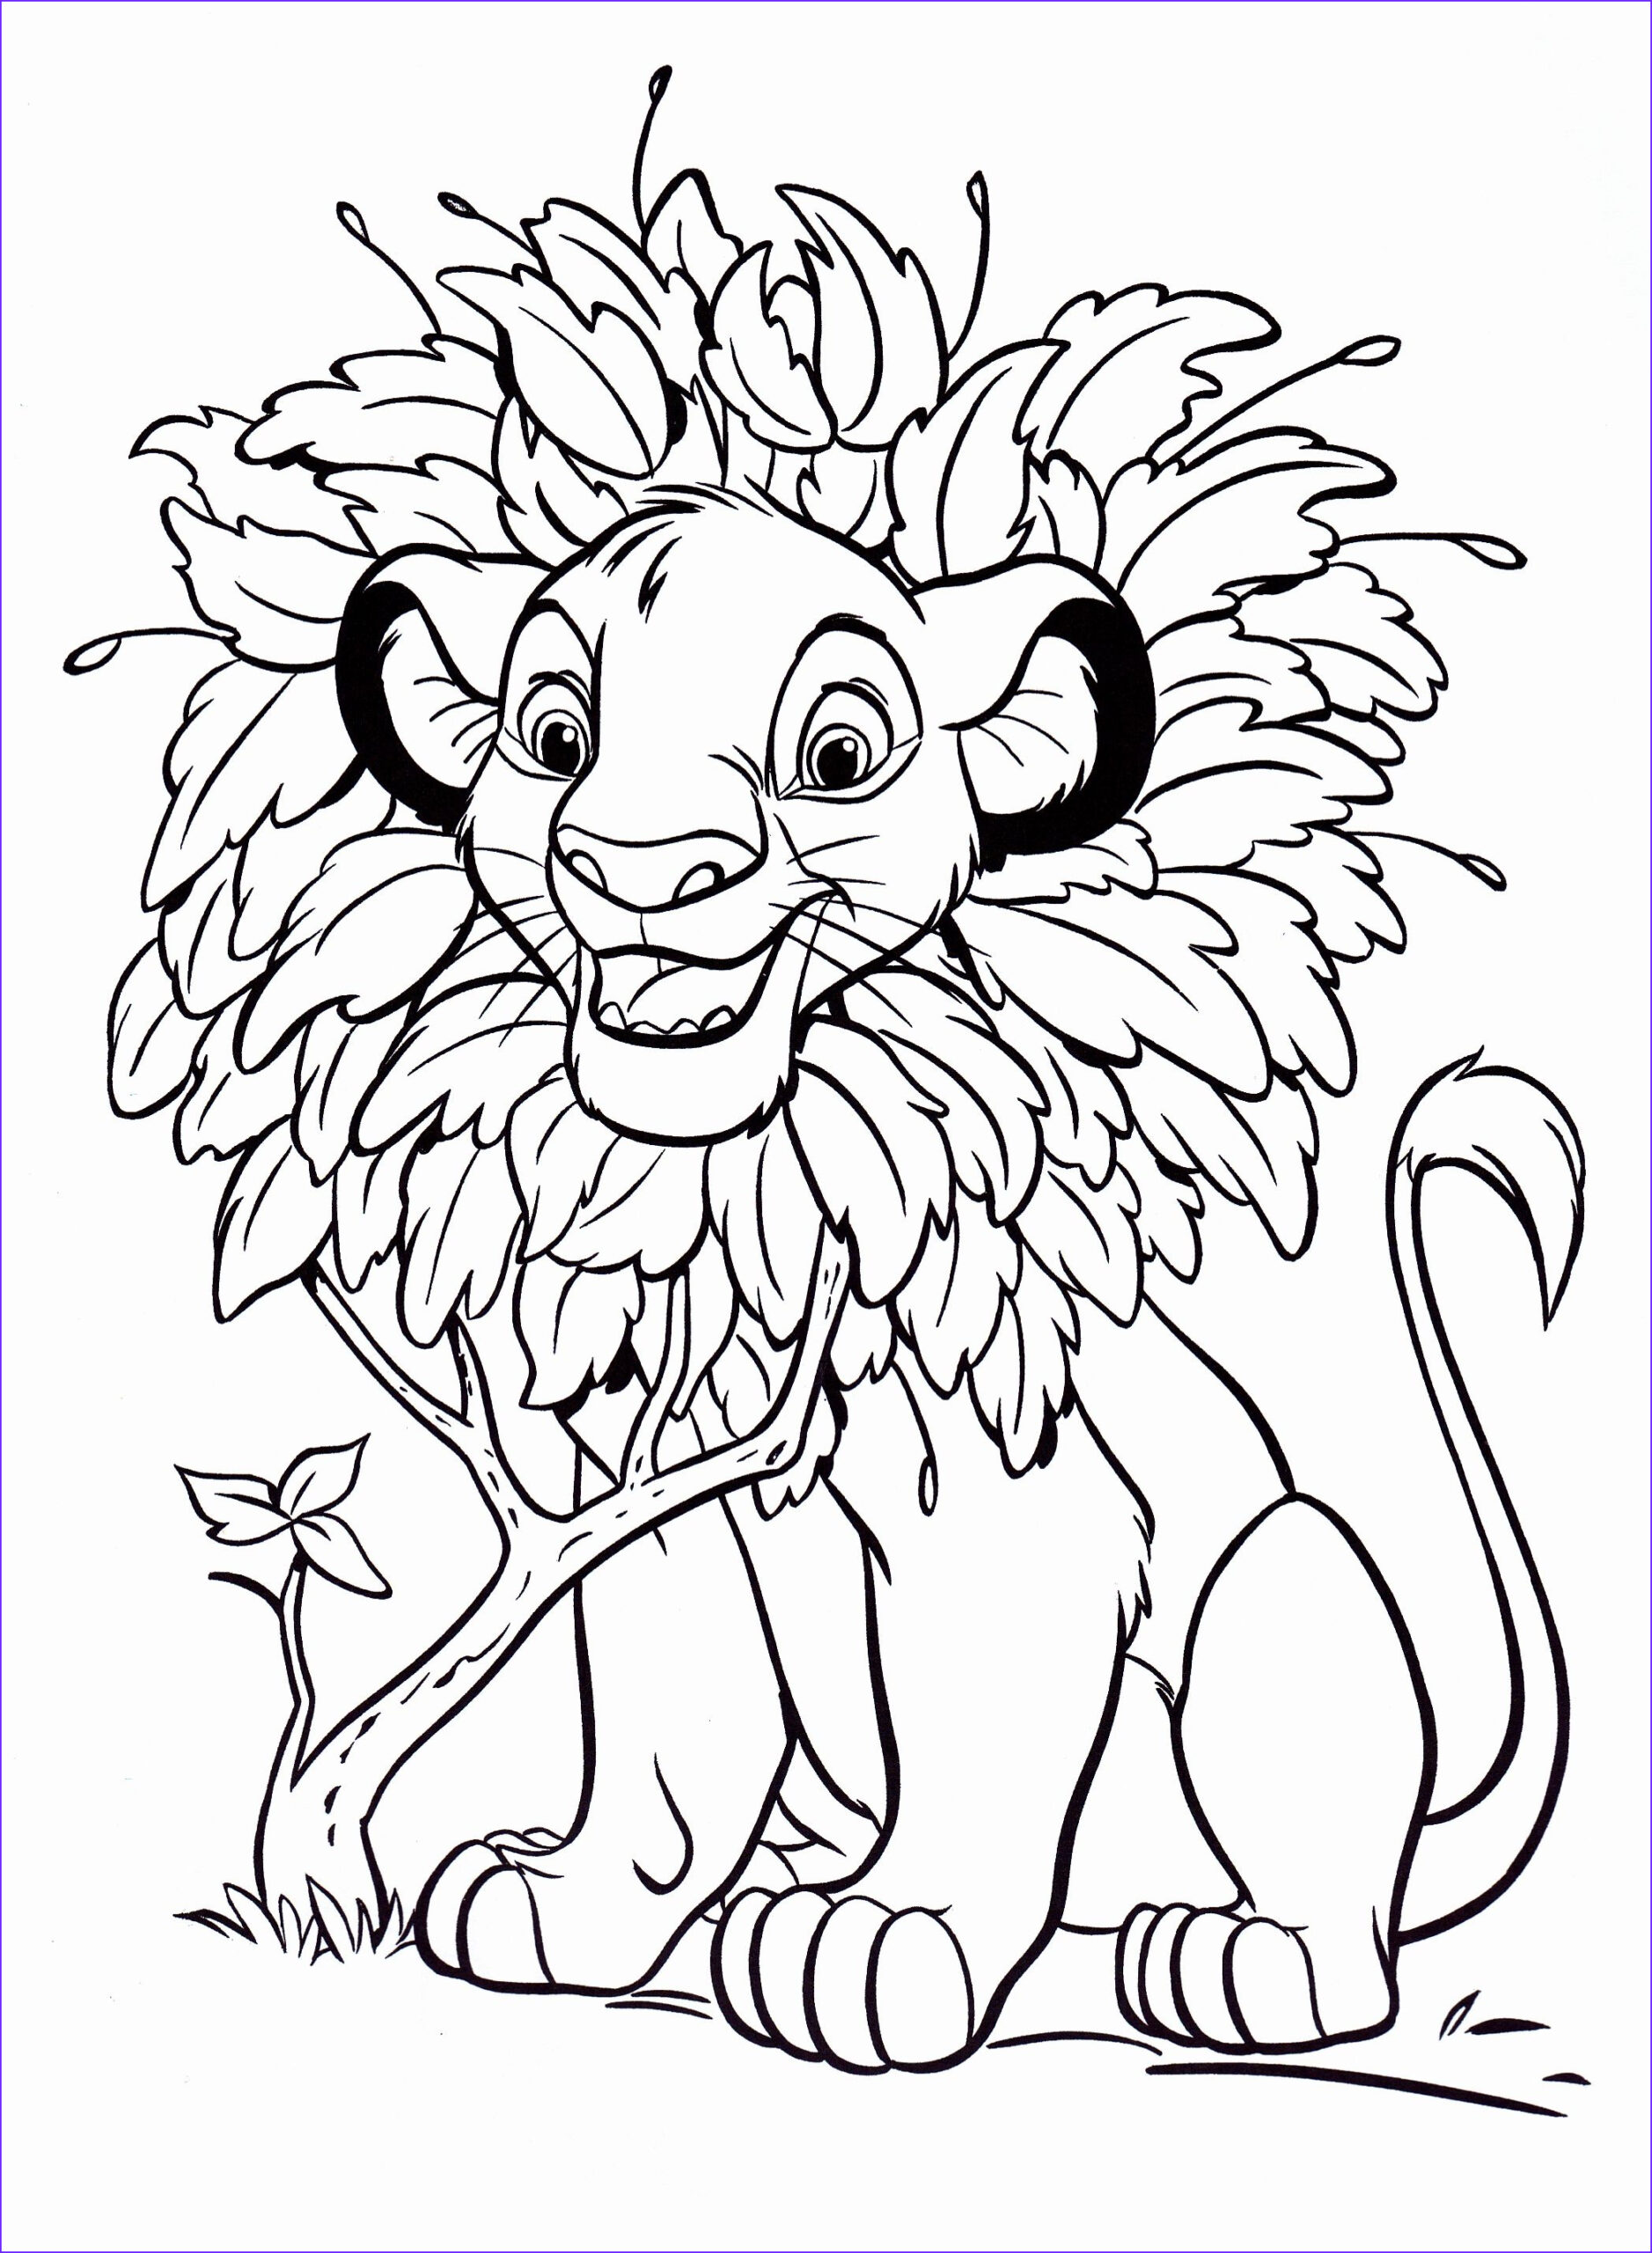 Disney Adult Coloring Book Unique Image Pin by Pamela Miller On Printables Coloring Pages